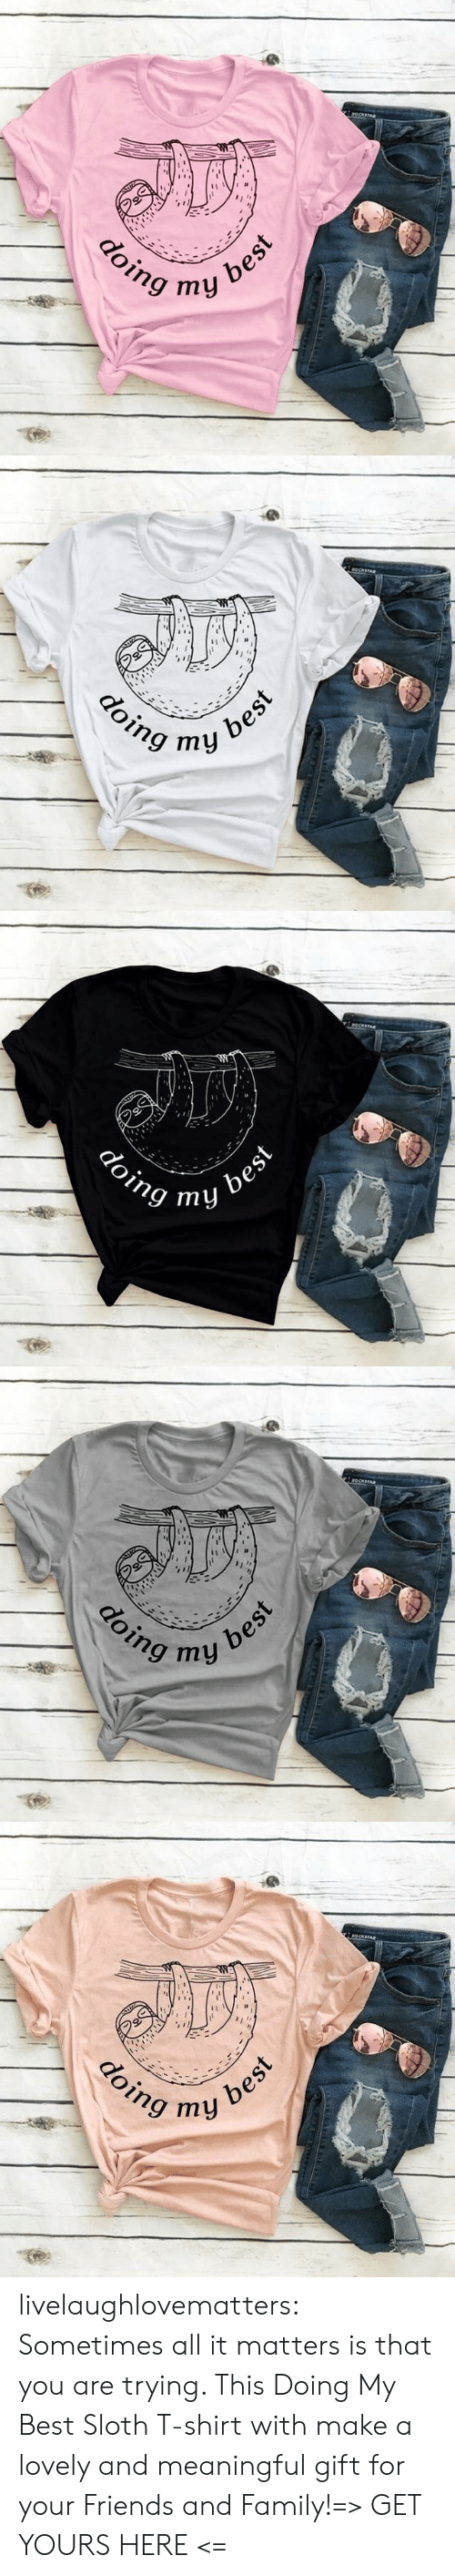 Meaningful: అ  best  ту  doing   OCKs  doing my  best   eOCKs  doing  best  ту   అ  नोपी  doing  best  my  क   aoCKSTAR  doing  ny best livelaughlovematters:  Sometimes all it matters is that you are trying. This Doing My Best Sloth T-shirt with make a lovely and meaningful gift for your Friends and Family!=> GET YOURS HERE <=